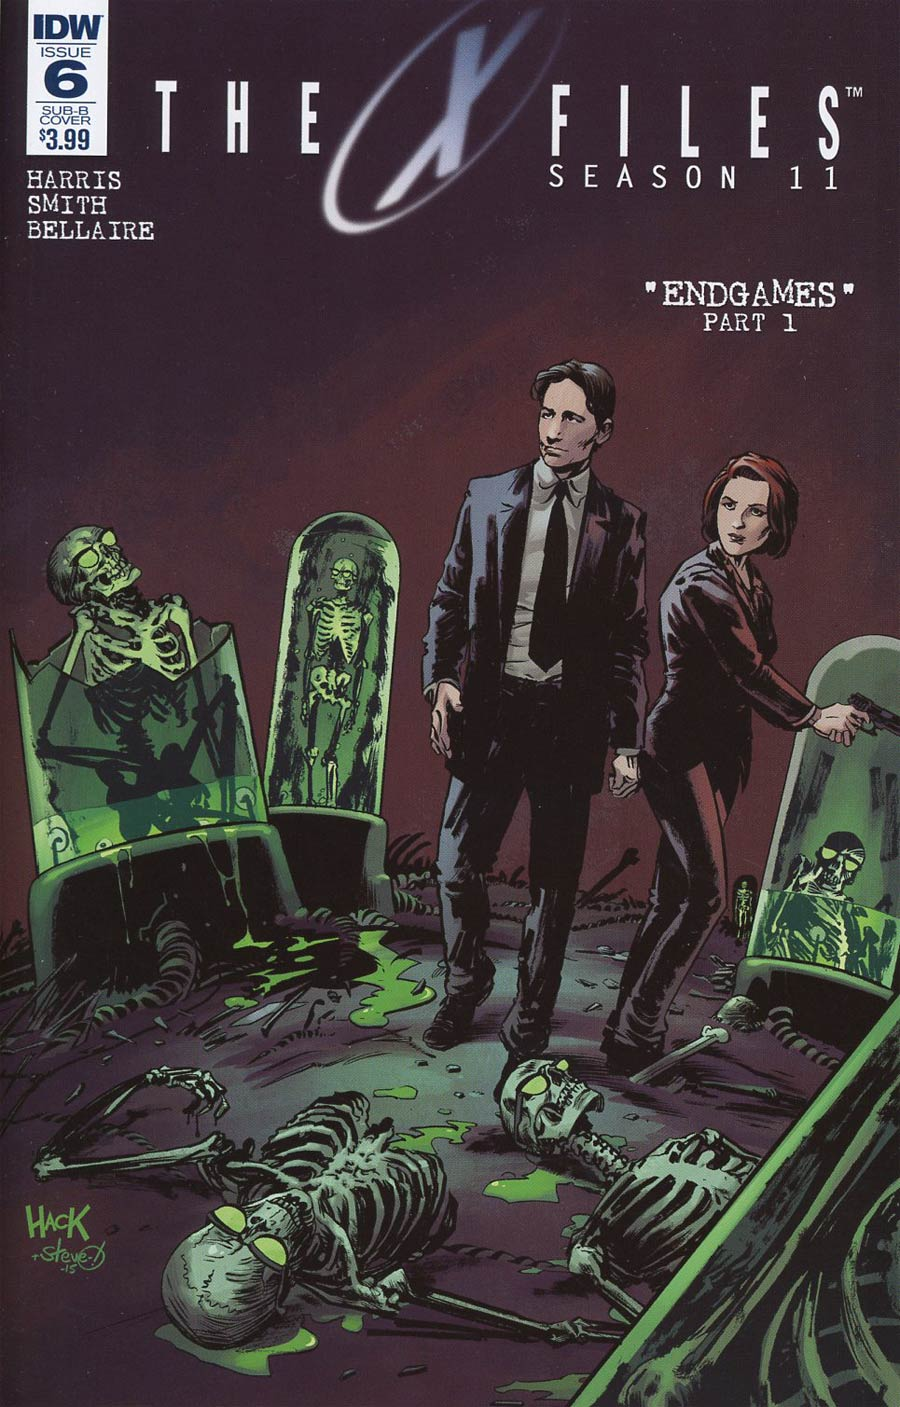 X-Files Season 11 #6 Cover C Variant Robert Hack Subscription Cover